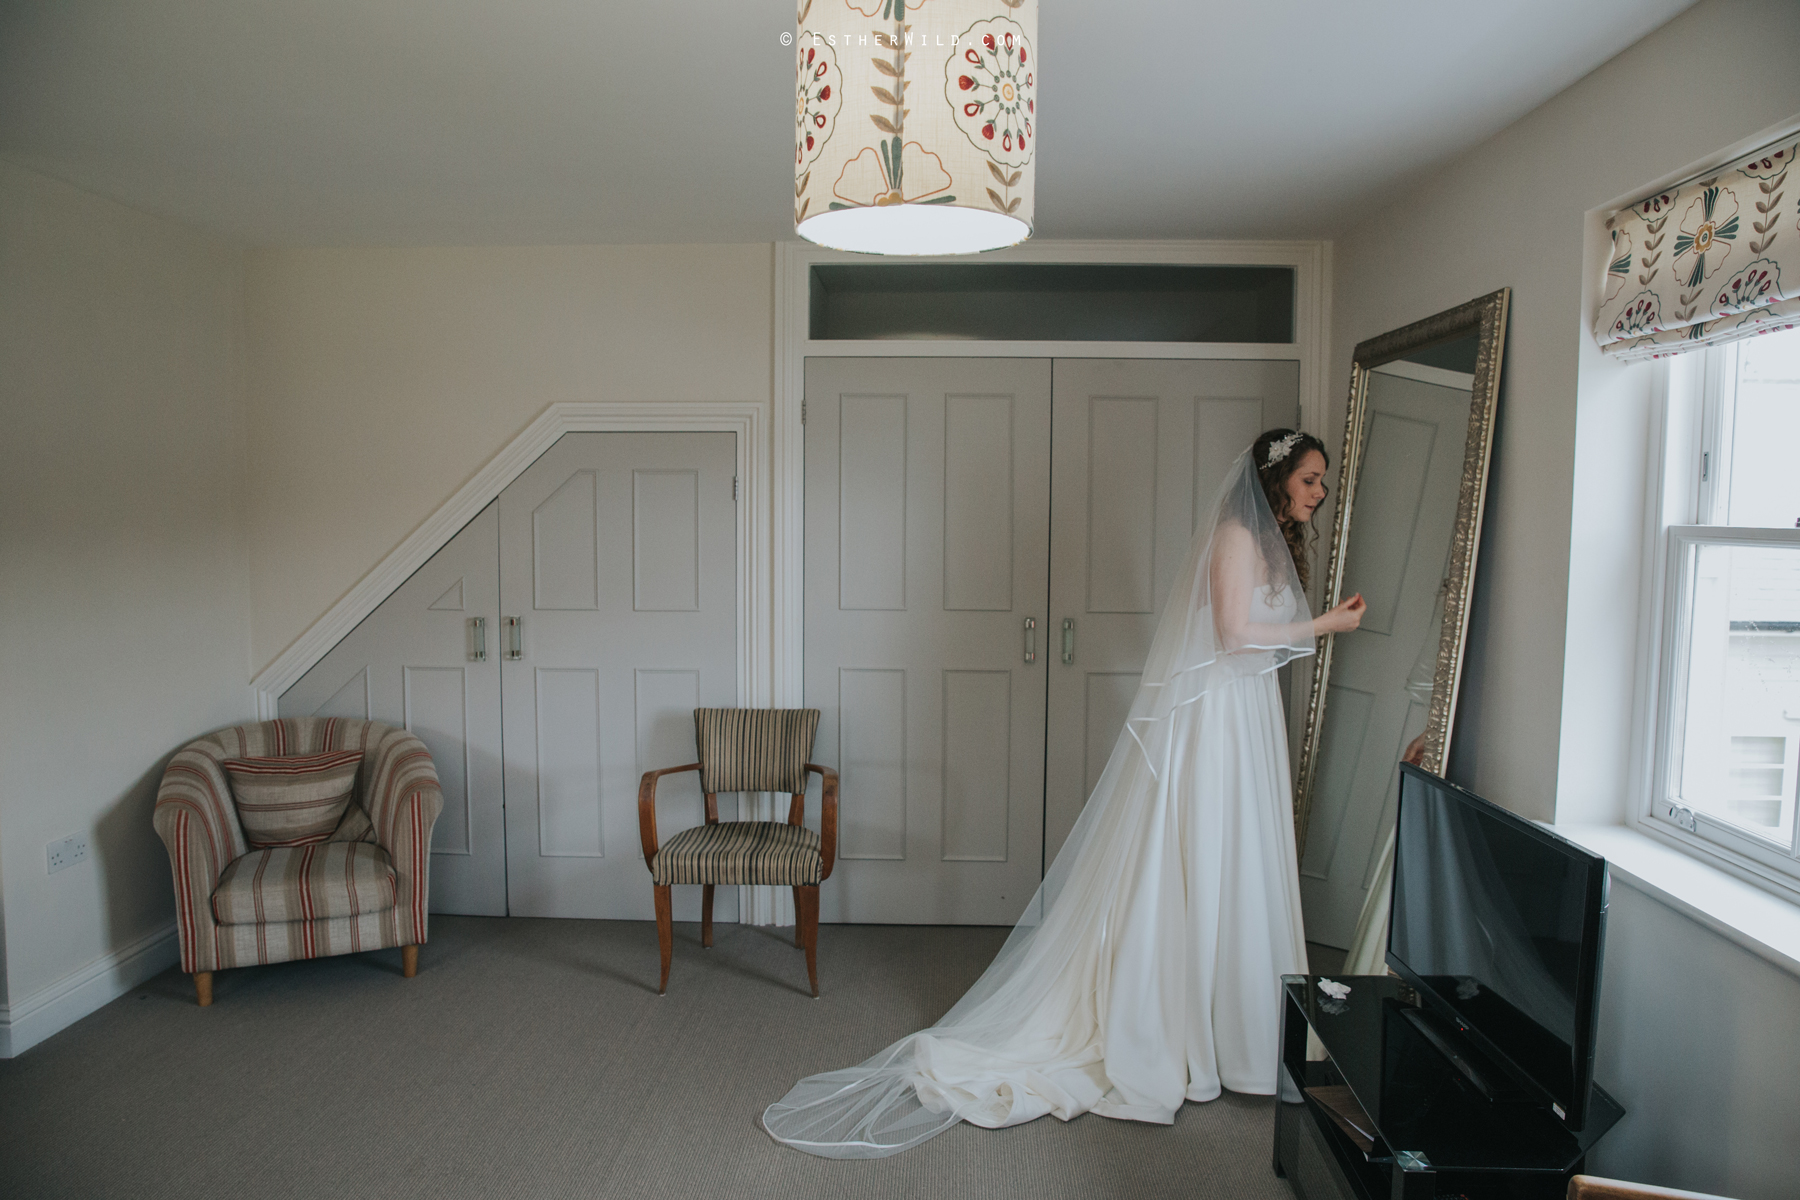 The_BoatHouse_Wedding_Venue_Ormesby_Norfolk_Broads_Boat_Wedding_Photography_Esther_Wild_Photographer_IMG_0680.jpg